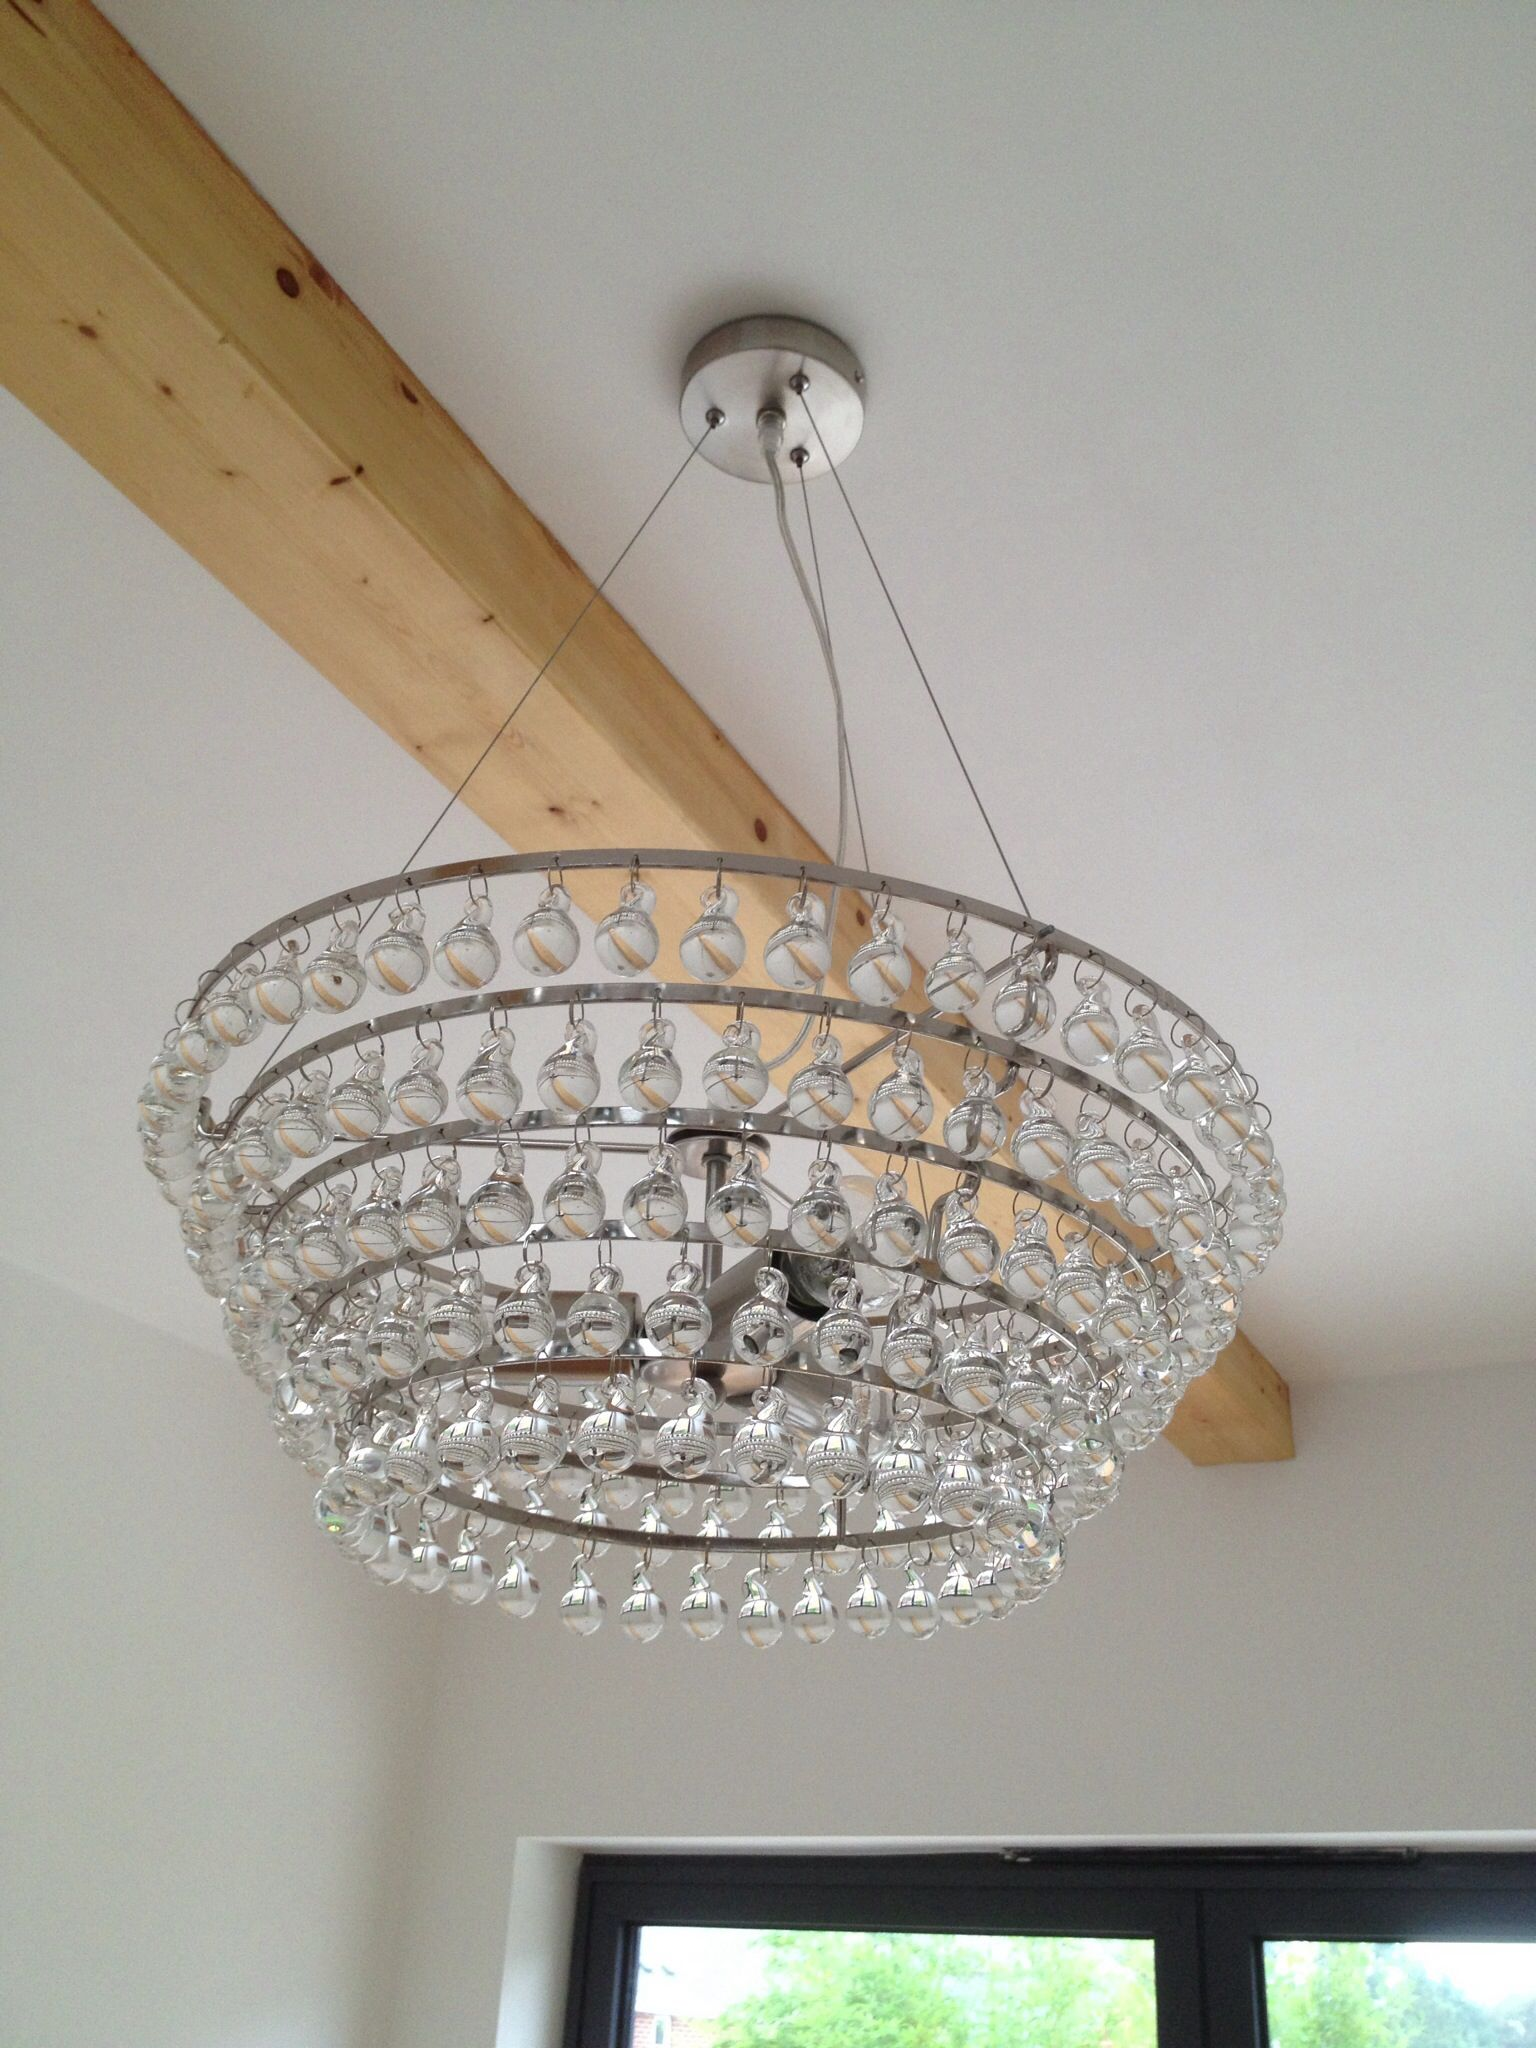 White pany glass orb chandelier Lighting Pinterest